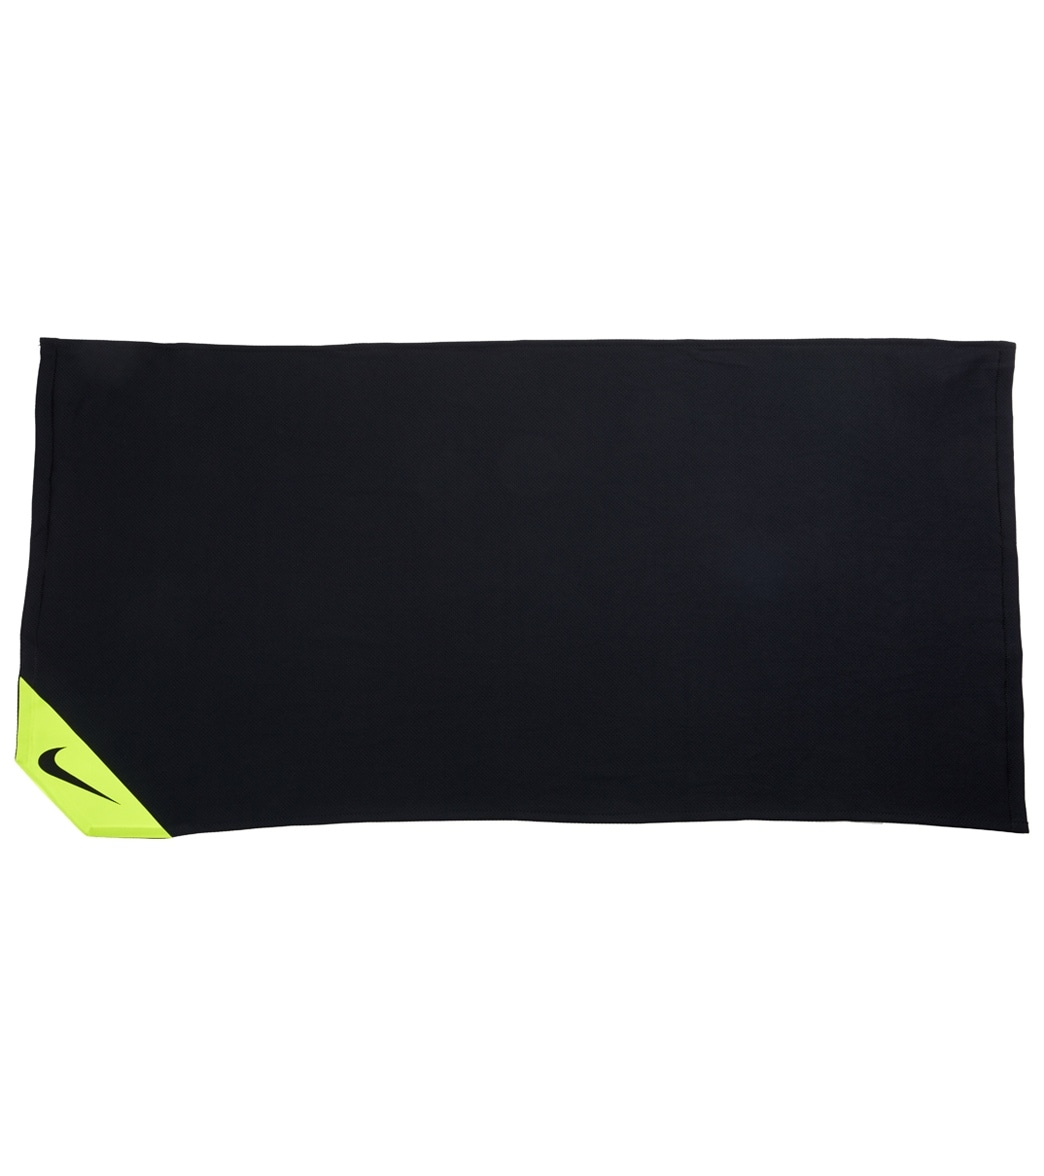 Nike Training Cool Towel: Nike Cooling Small Towel At SwimOutlet.com